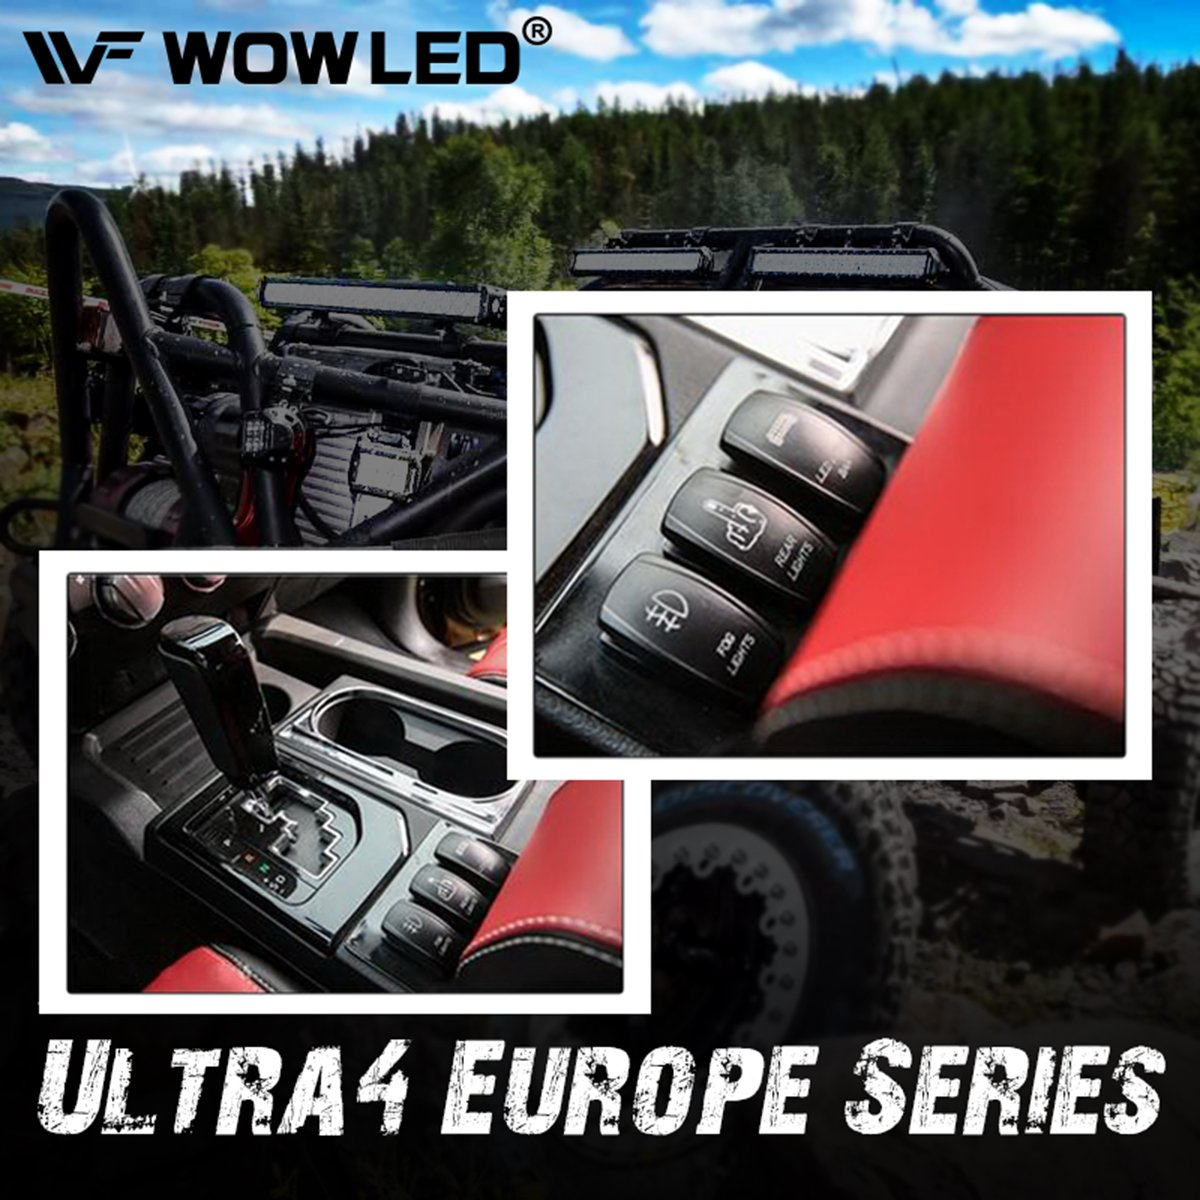 WOWLED Waterproof LED Illuminated Backlit Rocker Switch Light Bar for Car Truck 4X4 SUV Boat